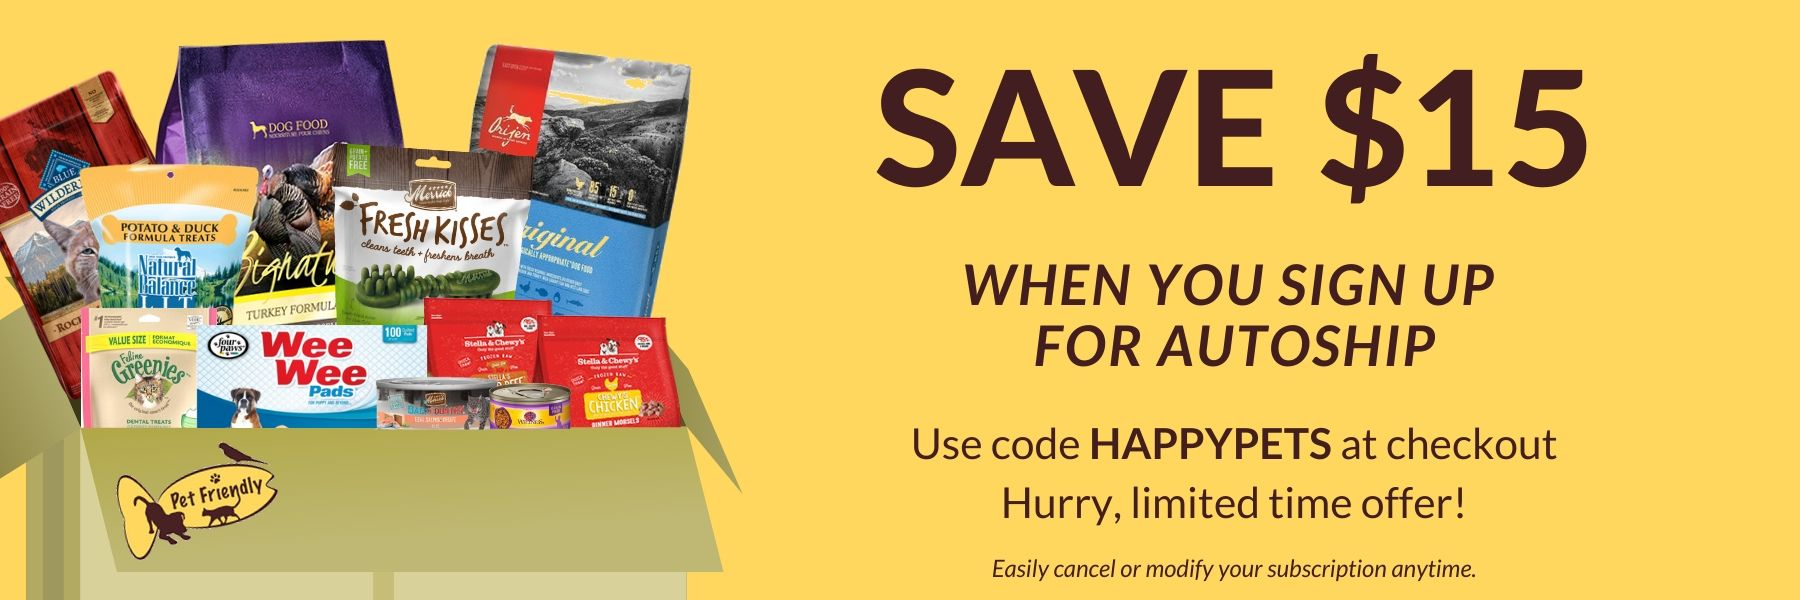 15$ off when you sign up for autoship using code happypets